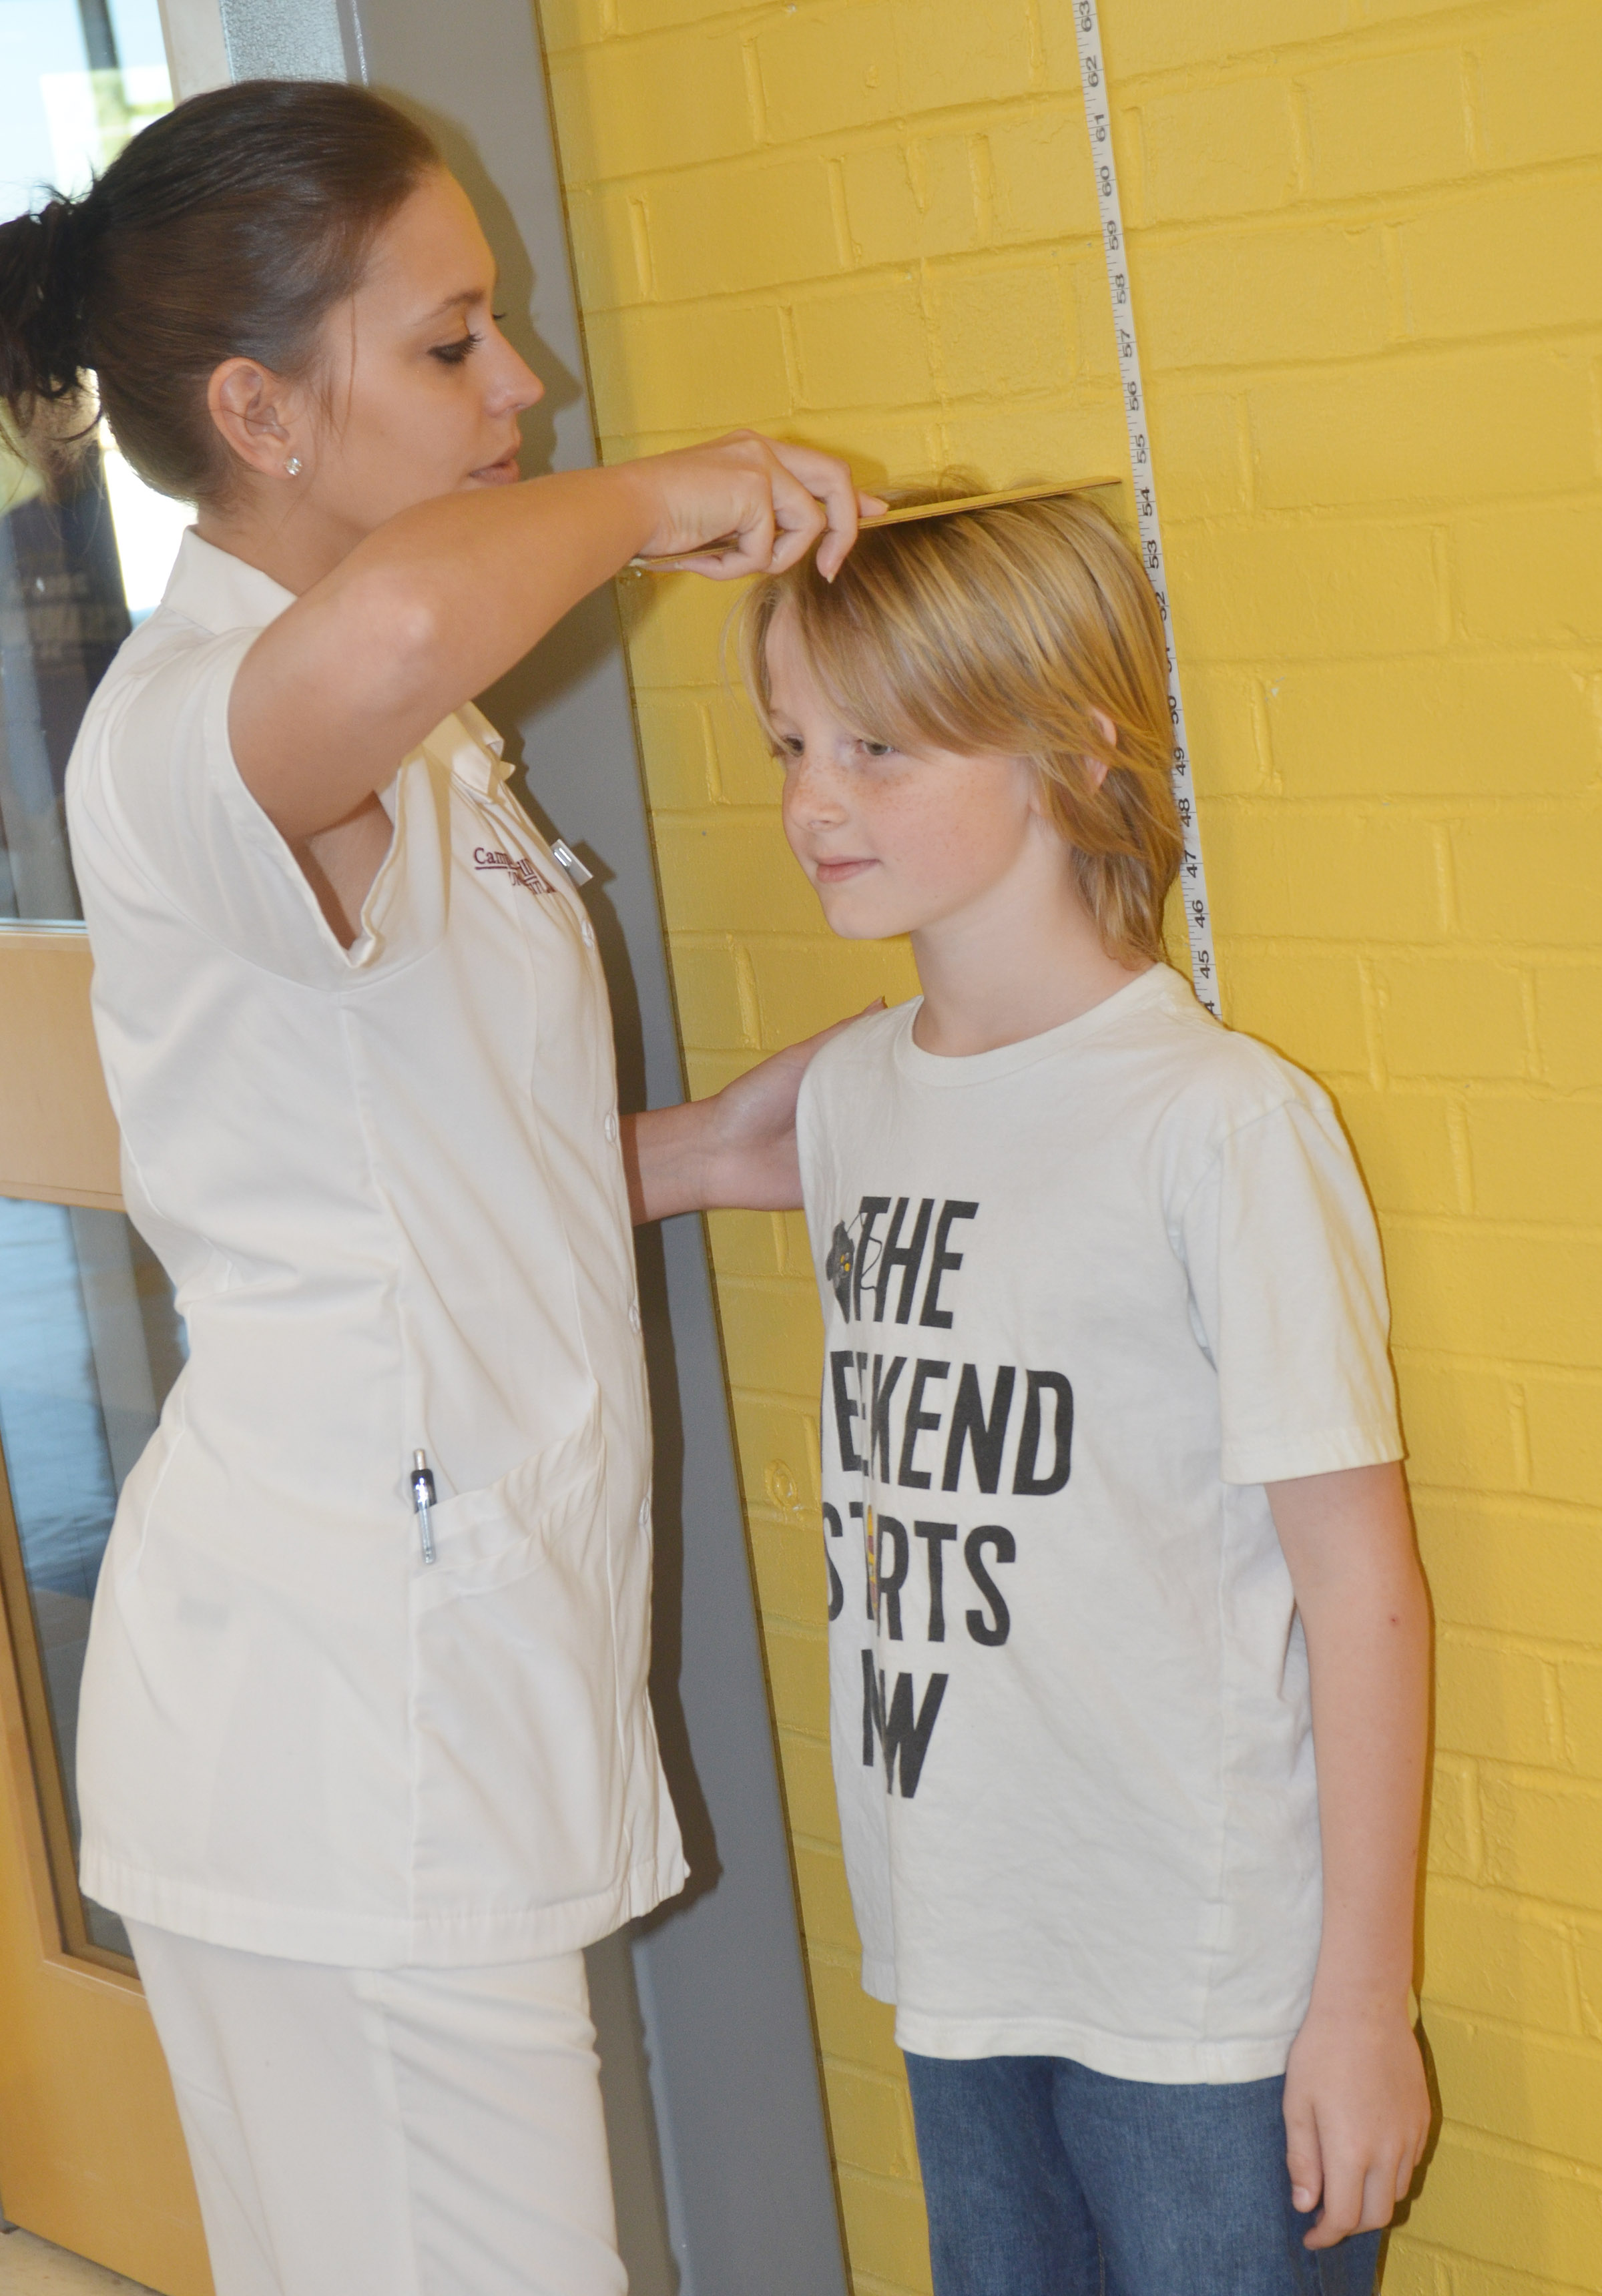 CES fourth-grader Devin Underwood has his height measured by Campbellsville University nursing student Deanna Chapman.